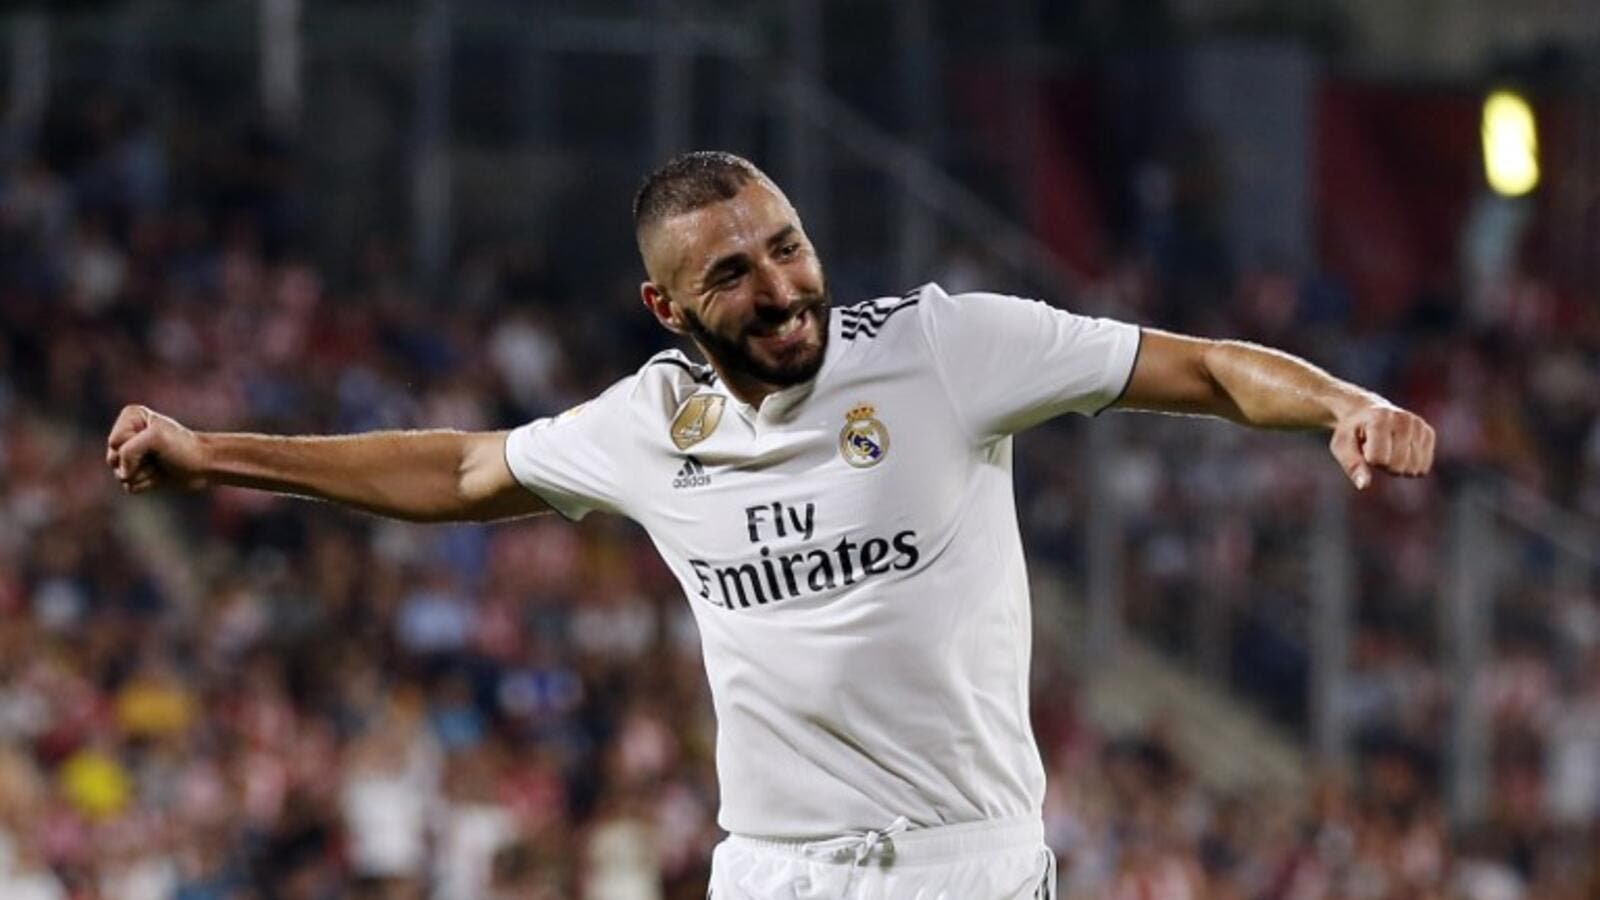 Real Madrid's French forward Karim Benzema celebrates his second goal during the Spanish league football match between Girona FC and Real Madrid CF at the Montilivi stadium in Girona on August 26, 2018.